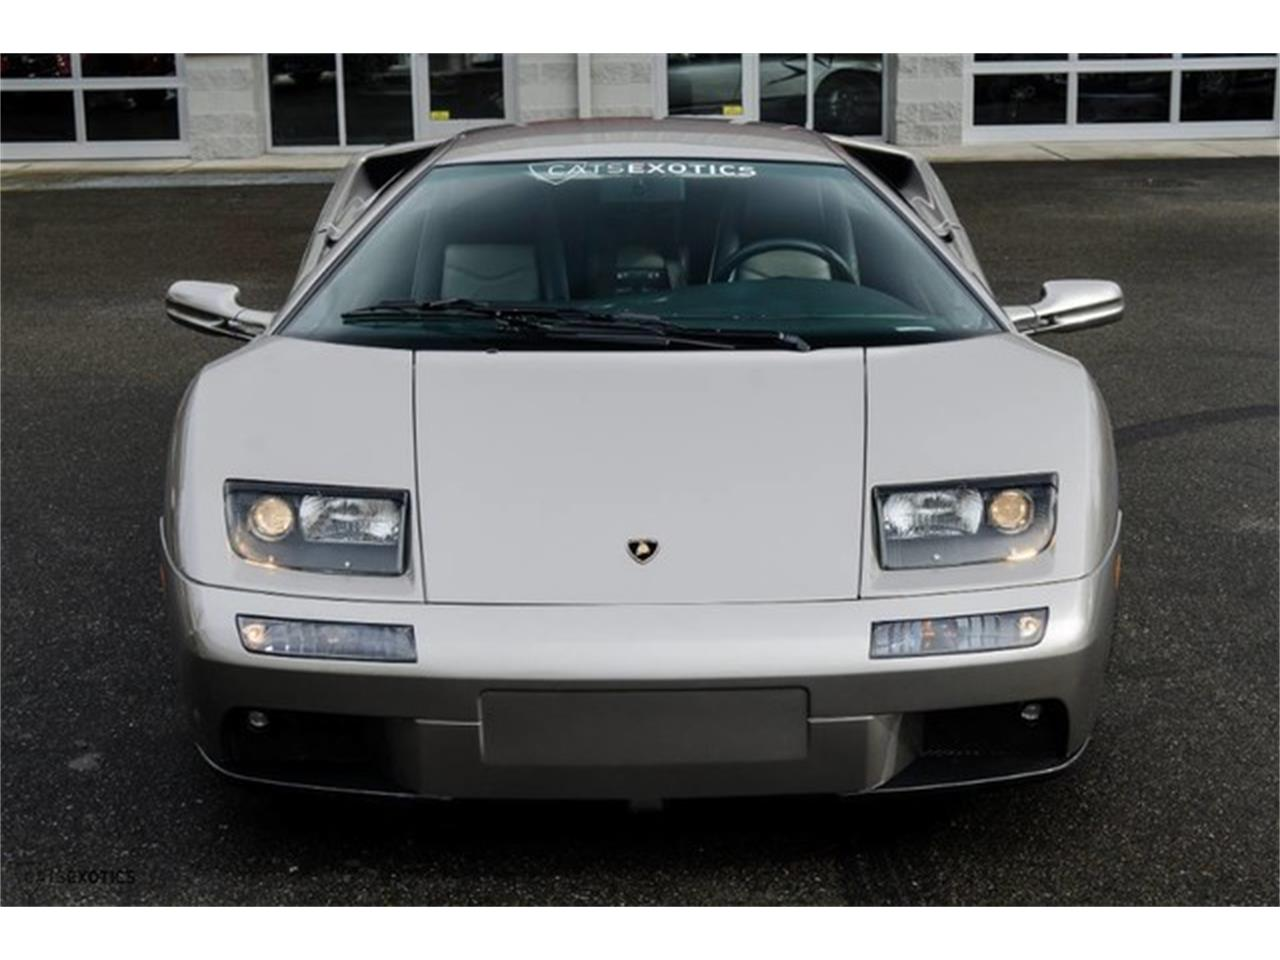 Large Picture of '01 Diablo located in Seattle Washington Auction Vehicle Offered by Cats Exotics - MZI1